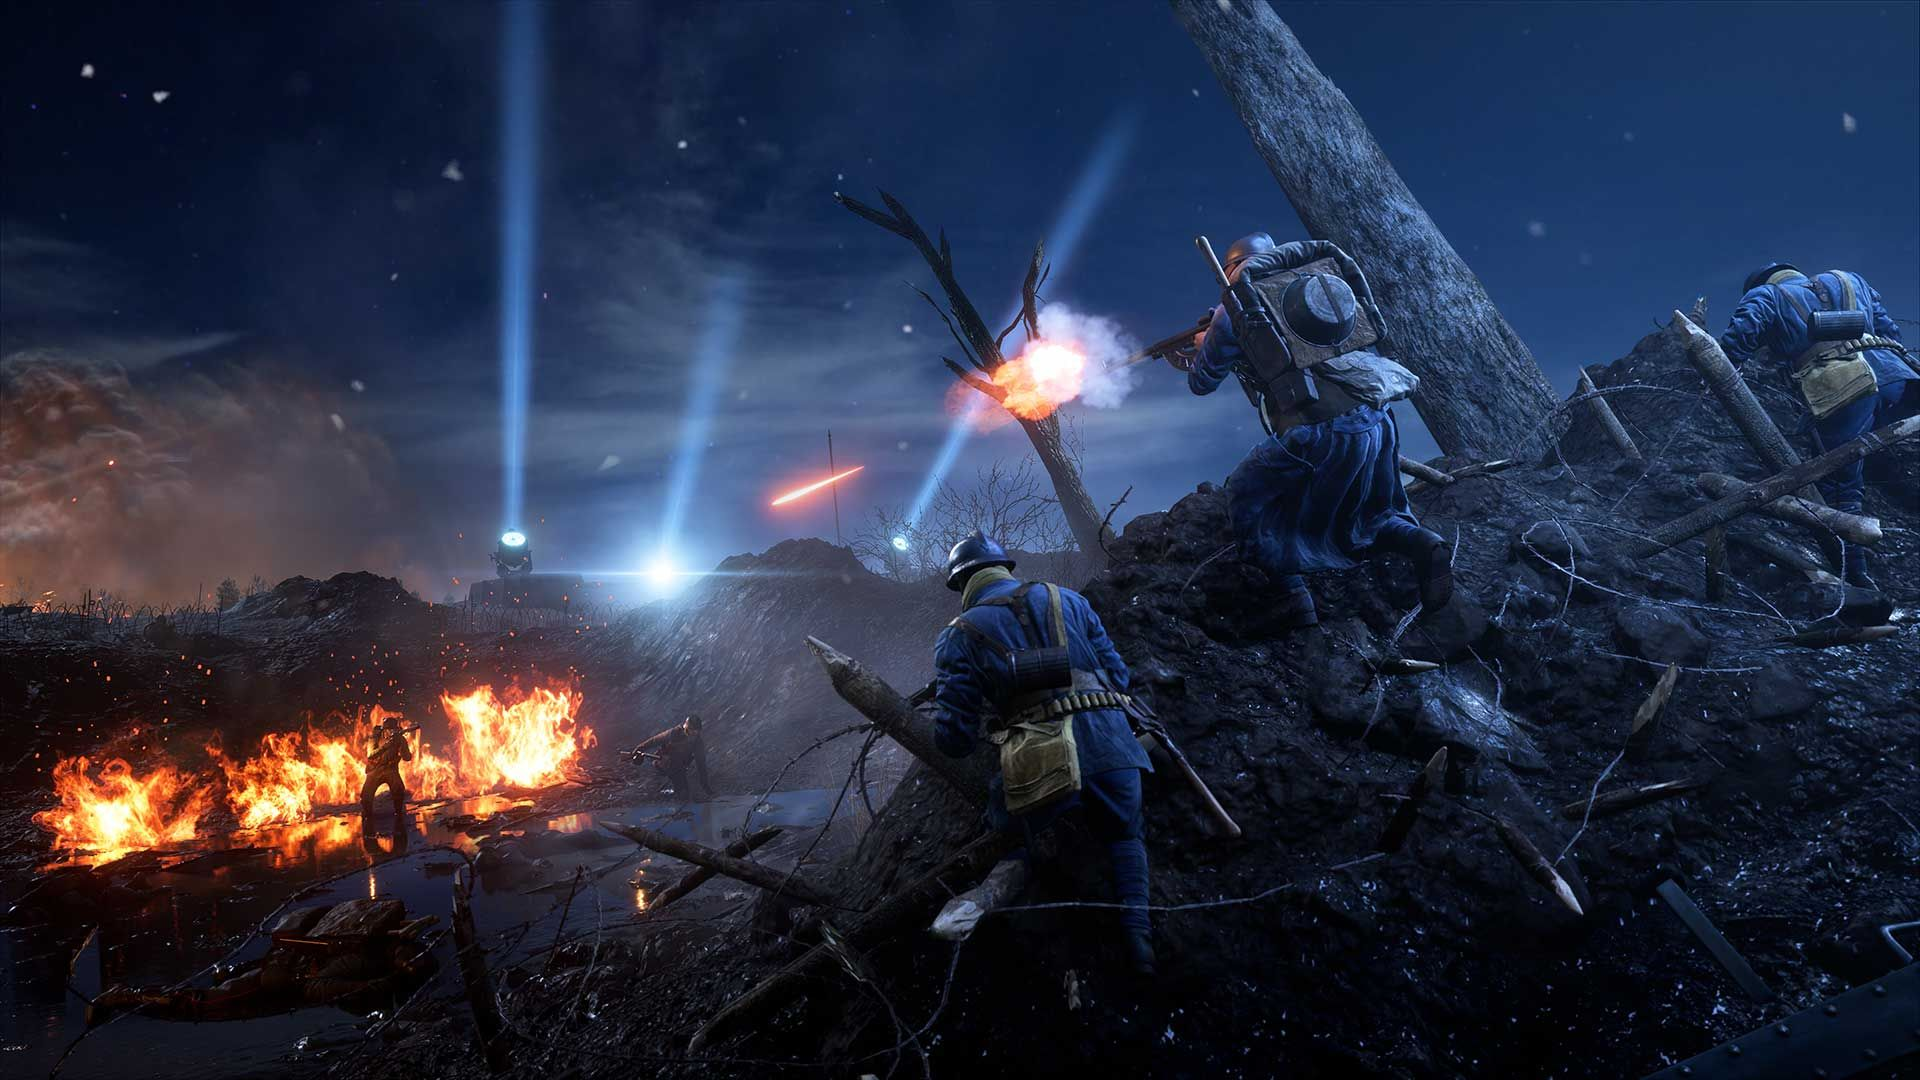 The next Battlefield reportedly returns to World War II